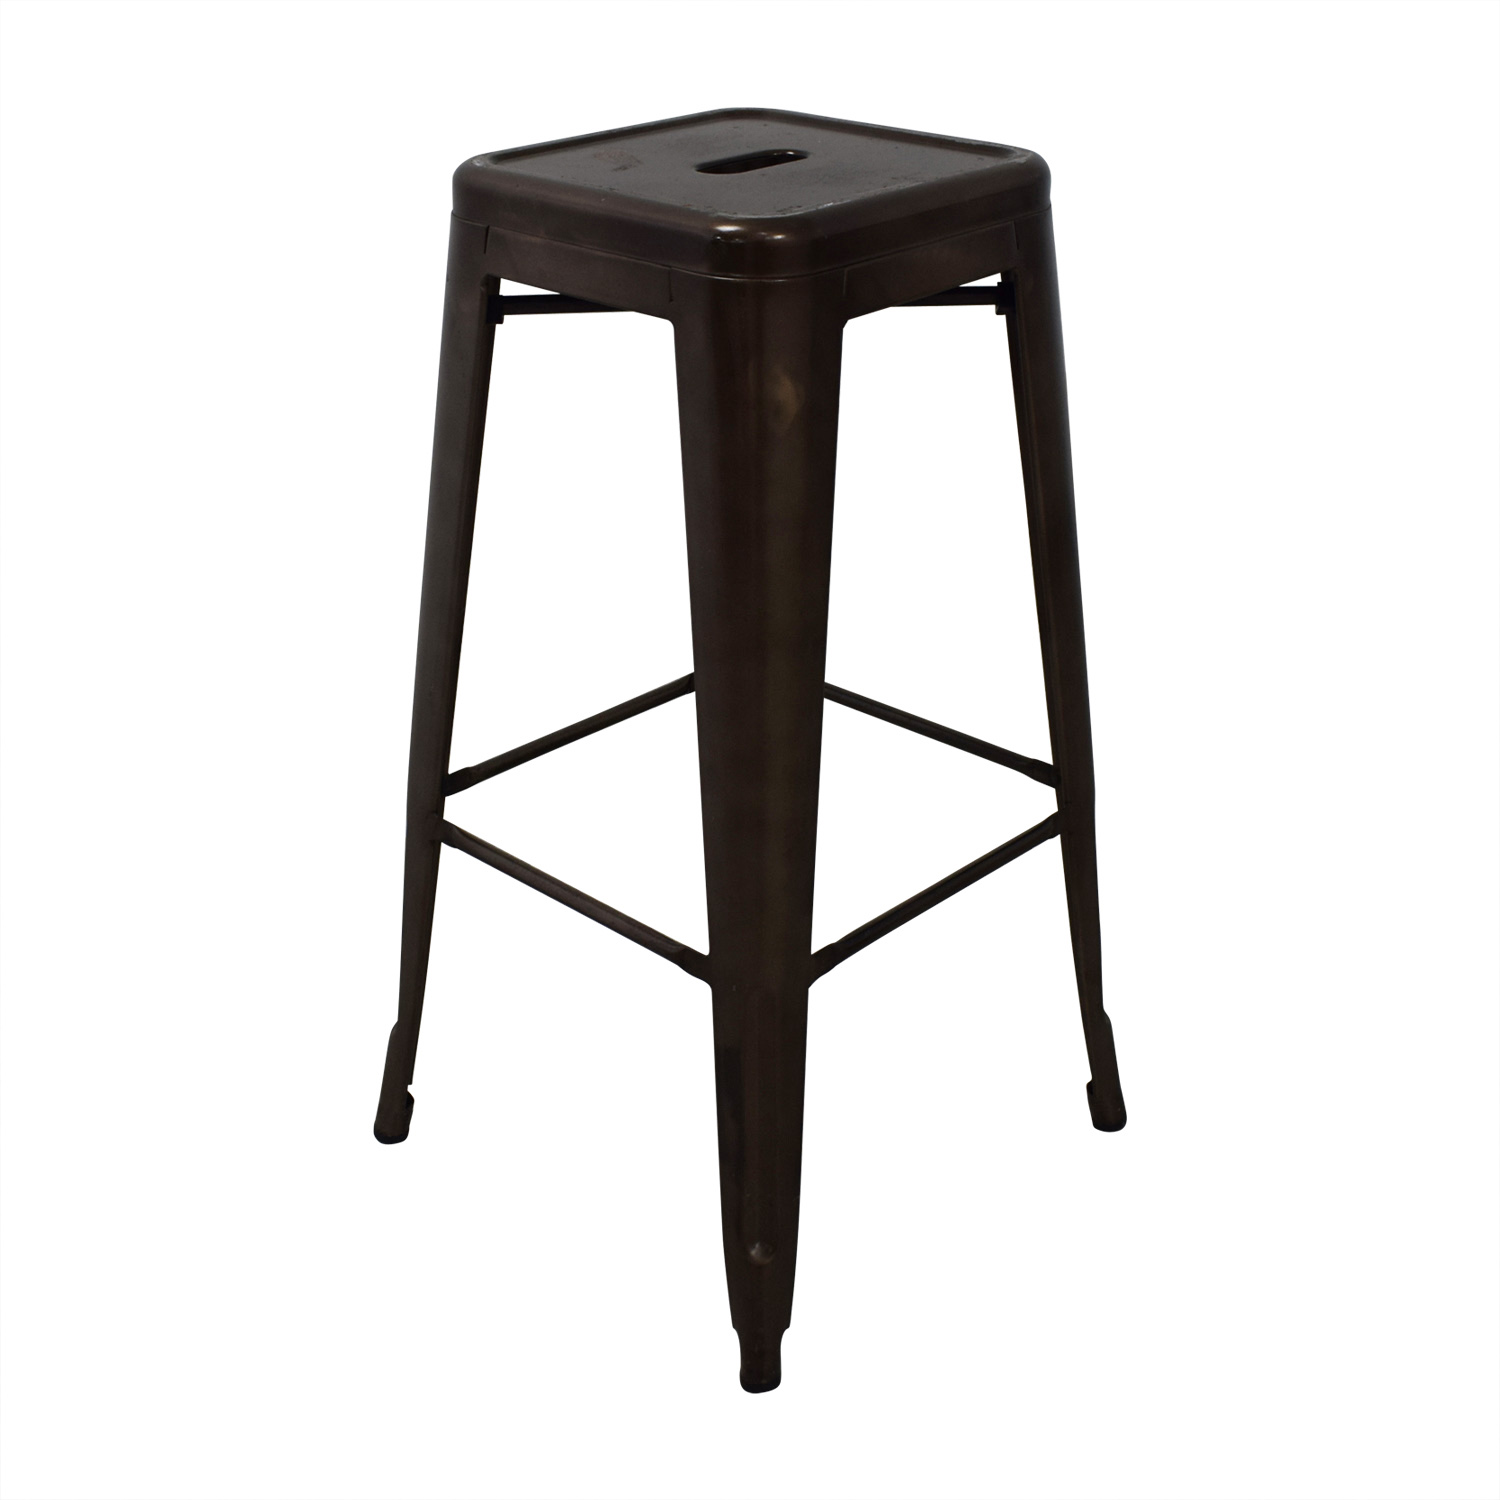 83 off tabouret style industrial rustic distressed metal bar stools chairs. Black Bedroom Furniture Sets. Home Design Ideas